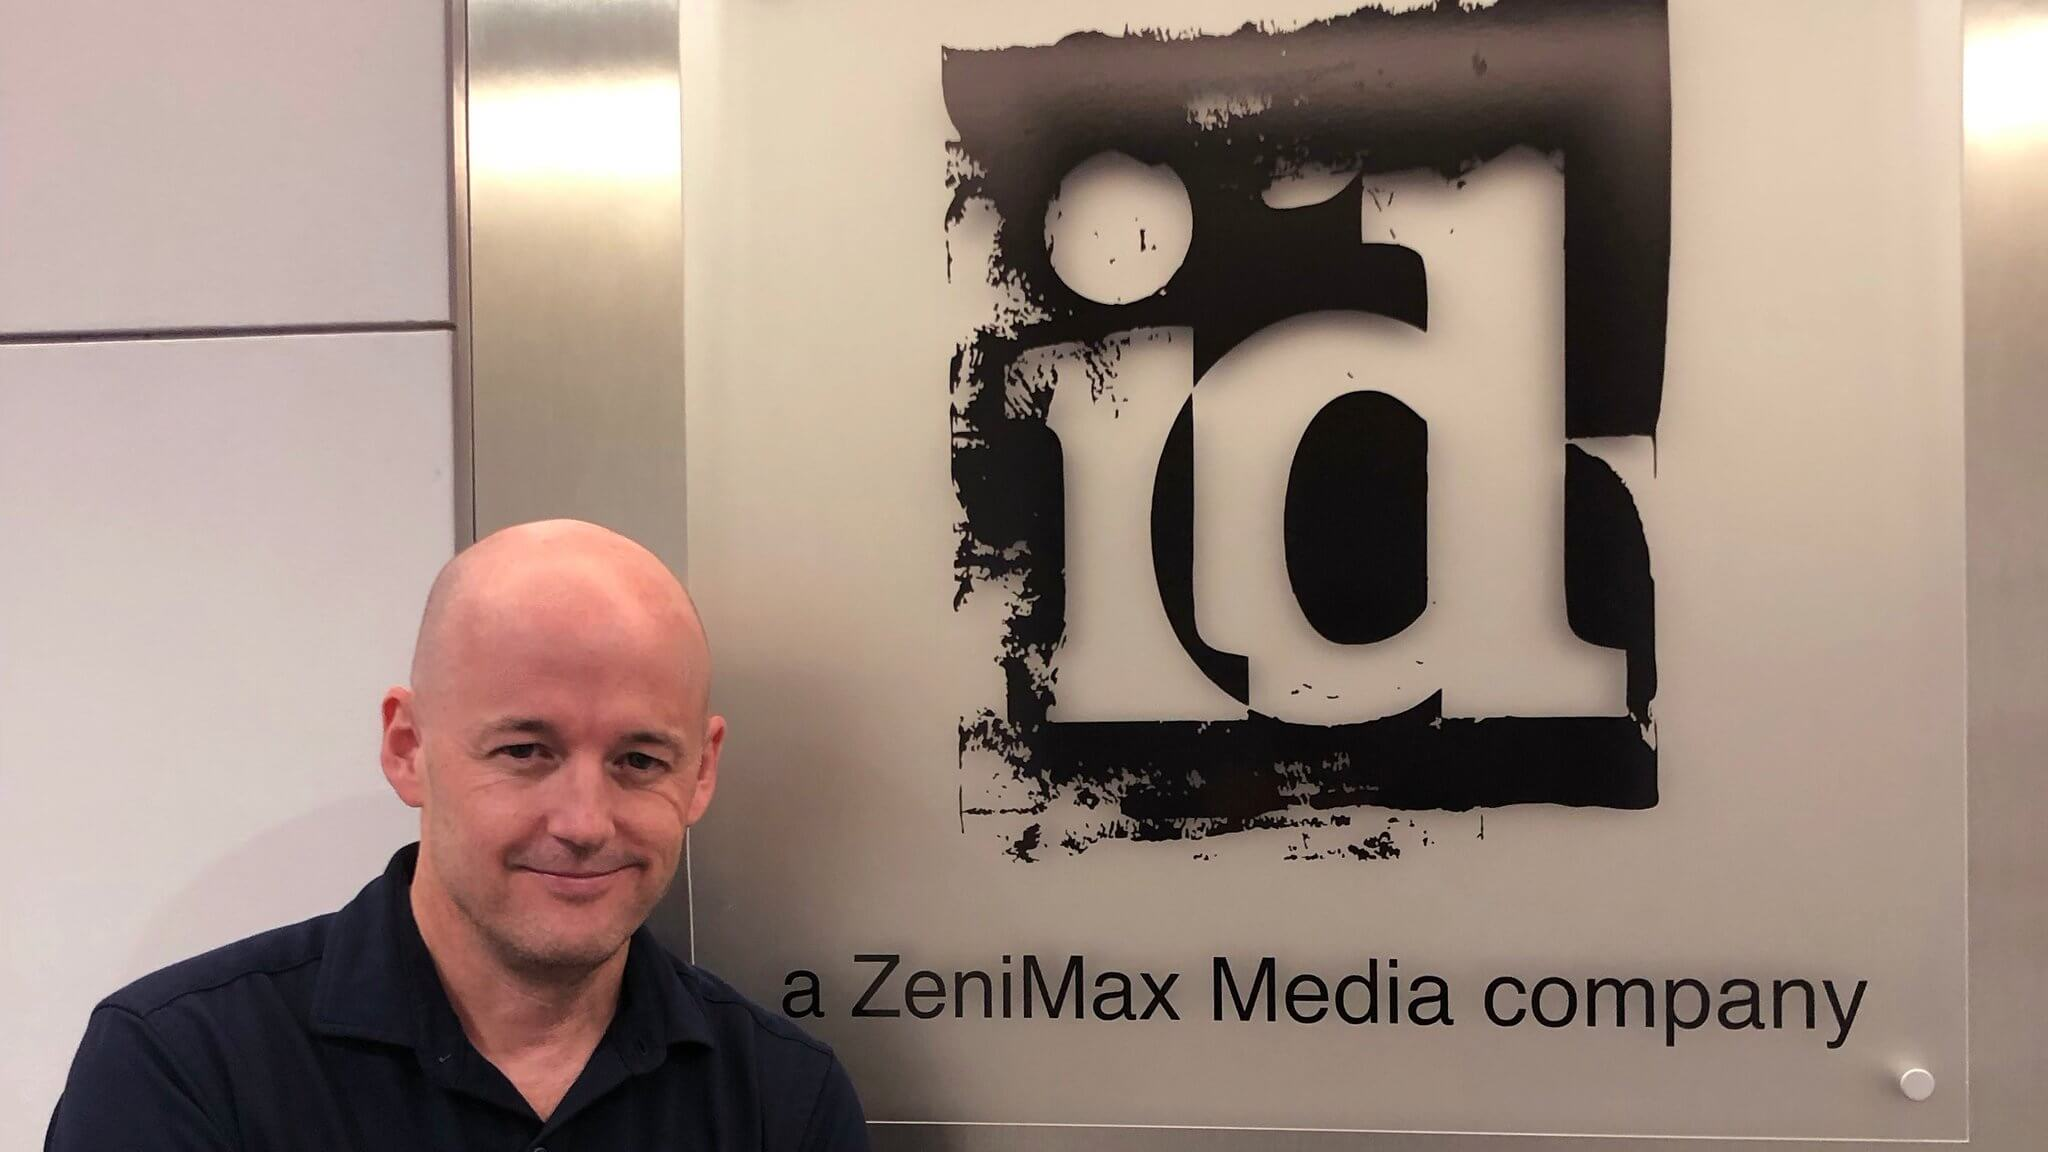 Tim Willits Announces He Wants to Leave ID Software After Quakecon 2019